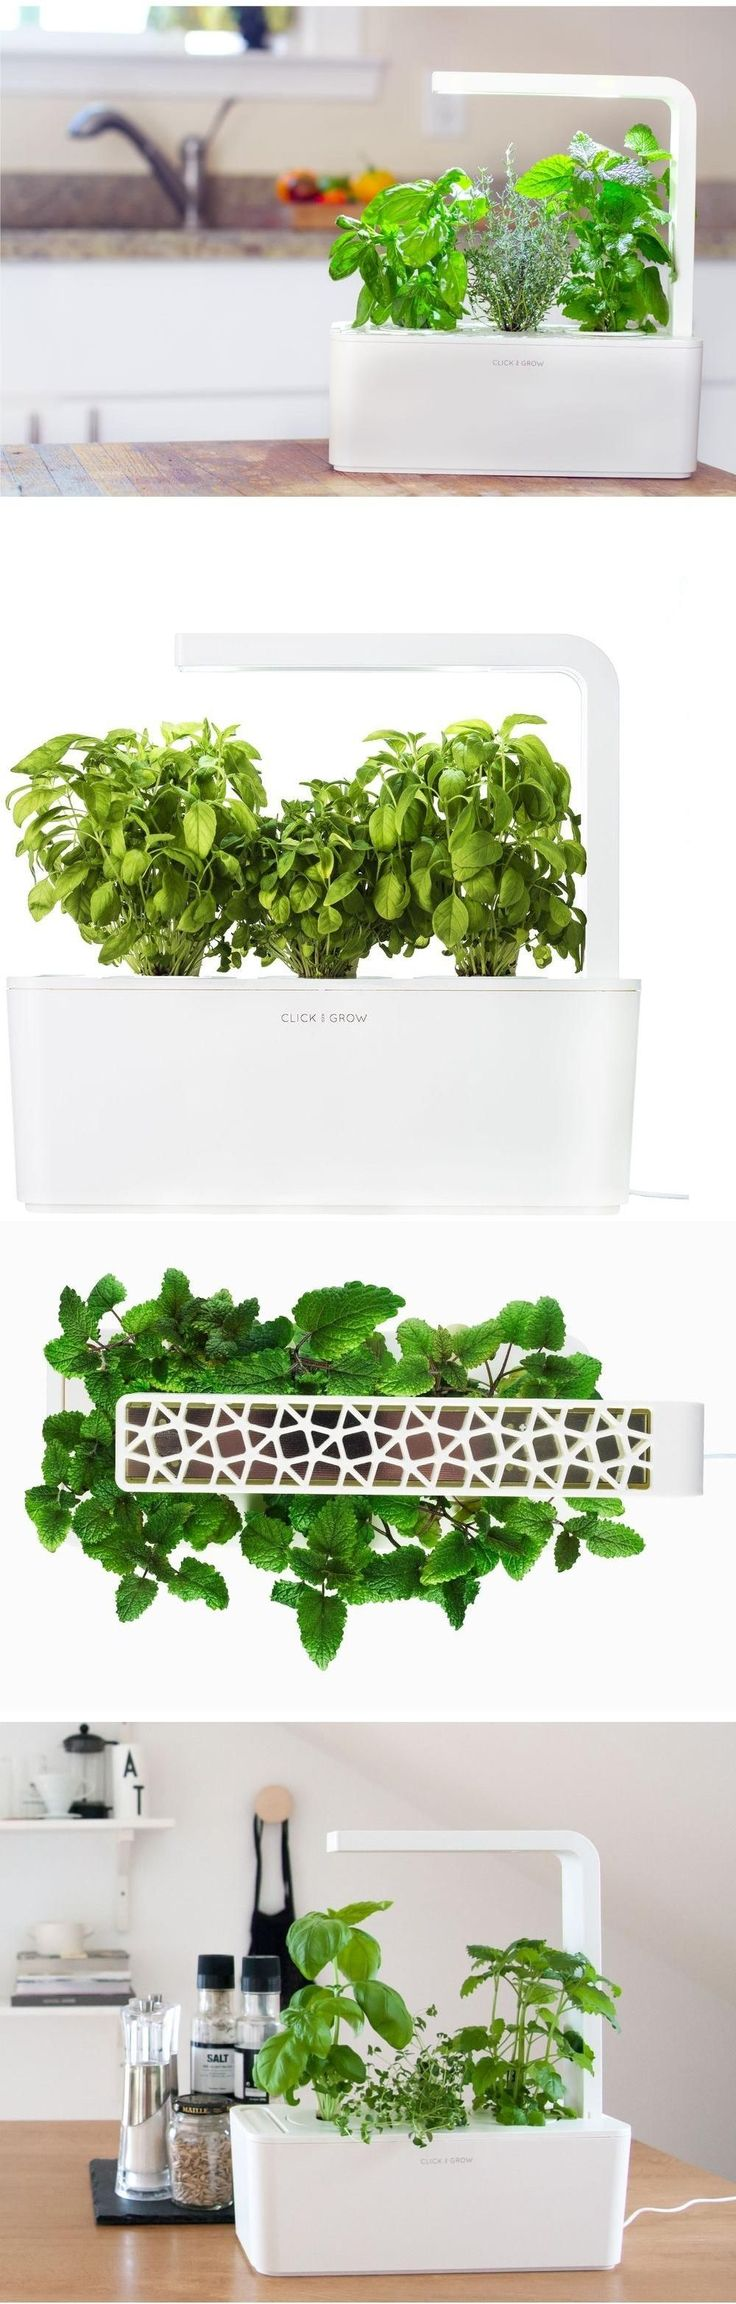 Hydroponic Systems 178991: Smart Indoor Herb Garden Grow Kit W Led Grow  Light, Self